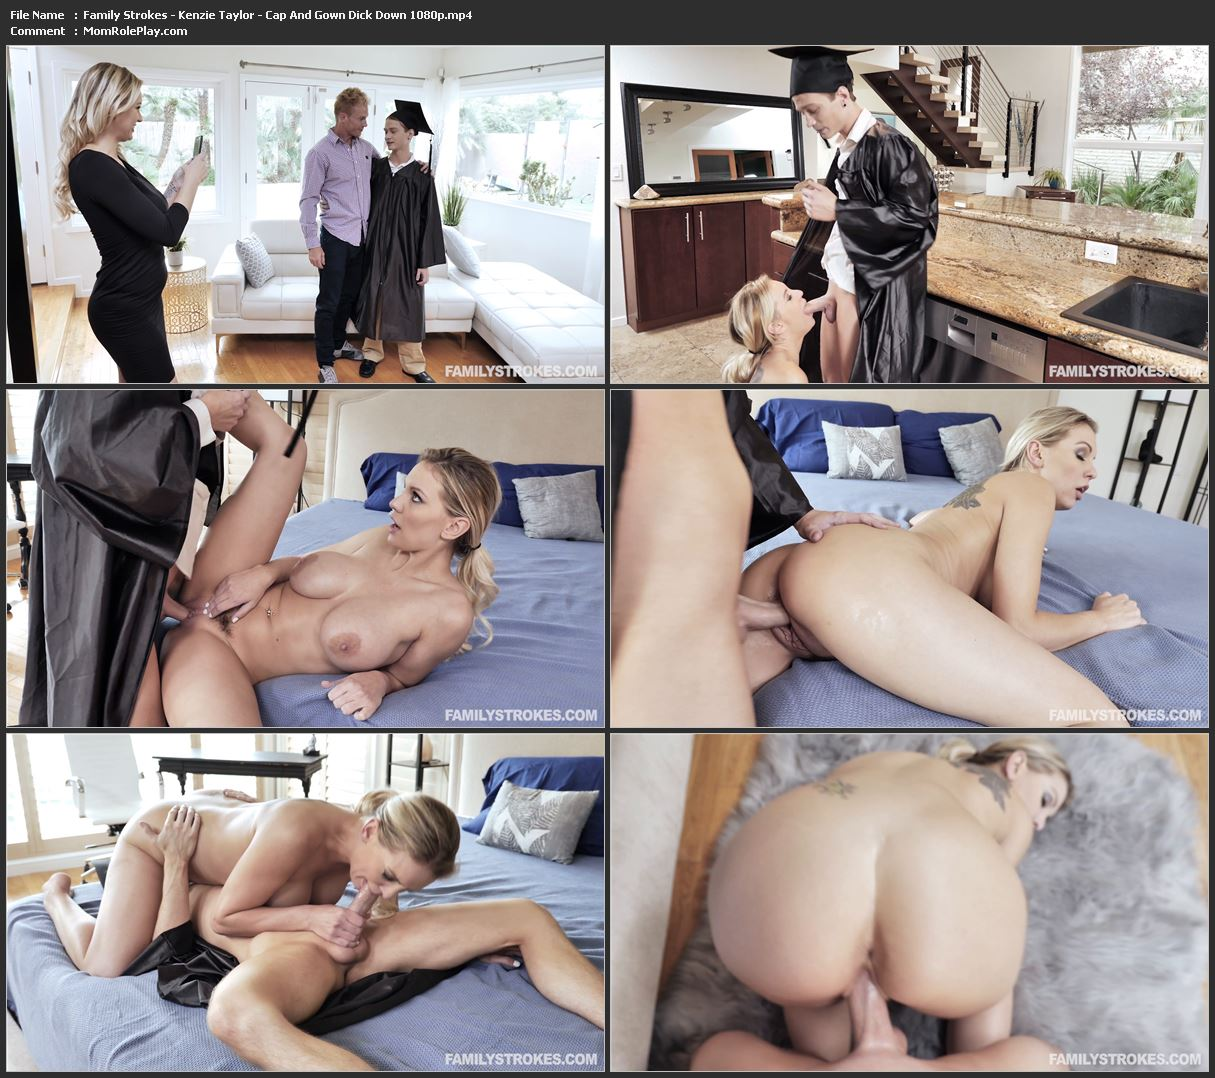 Family Strokes - Kenzie Taylor - Cap And Gown Dick Down 1080p